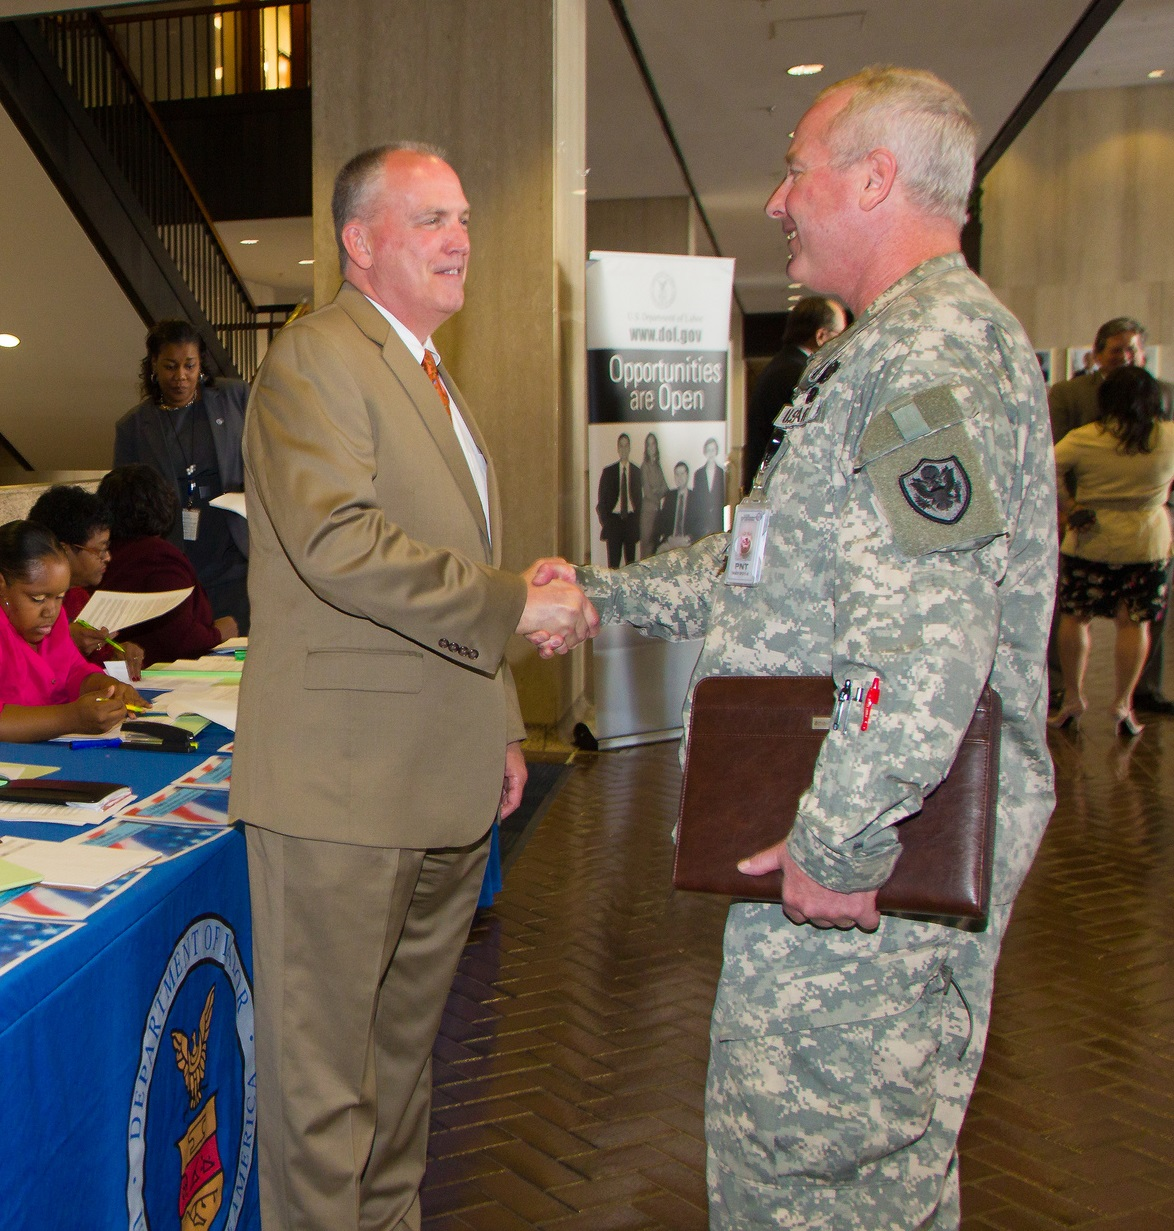 Soldier shaking hands with potential civilian employer in front of both at employment fair